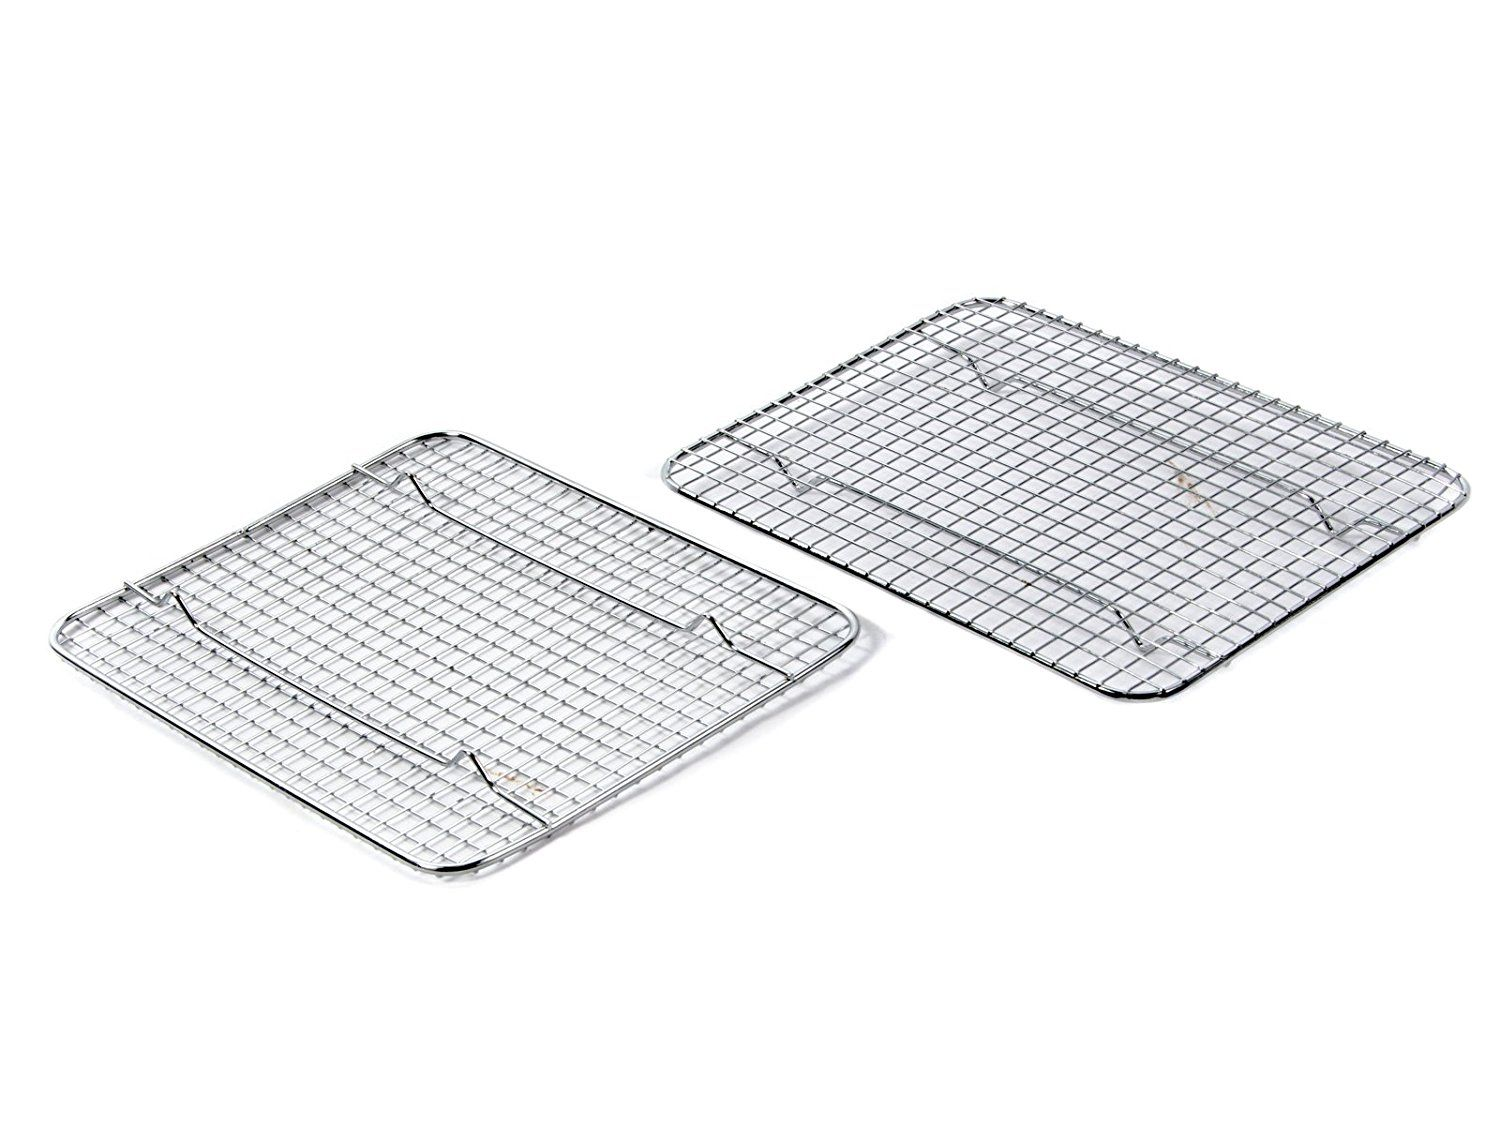 Great Credentials Heavy Duty 1 4 Size Cooling Rack Cooling Racks Wire Pan Grade Commercial Grade Oven Safe Chrome 8 X 10 In Oven Safe Racks Cooling Racks